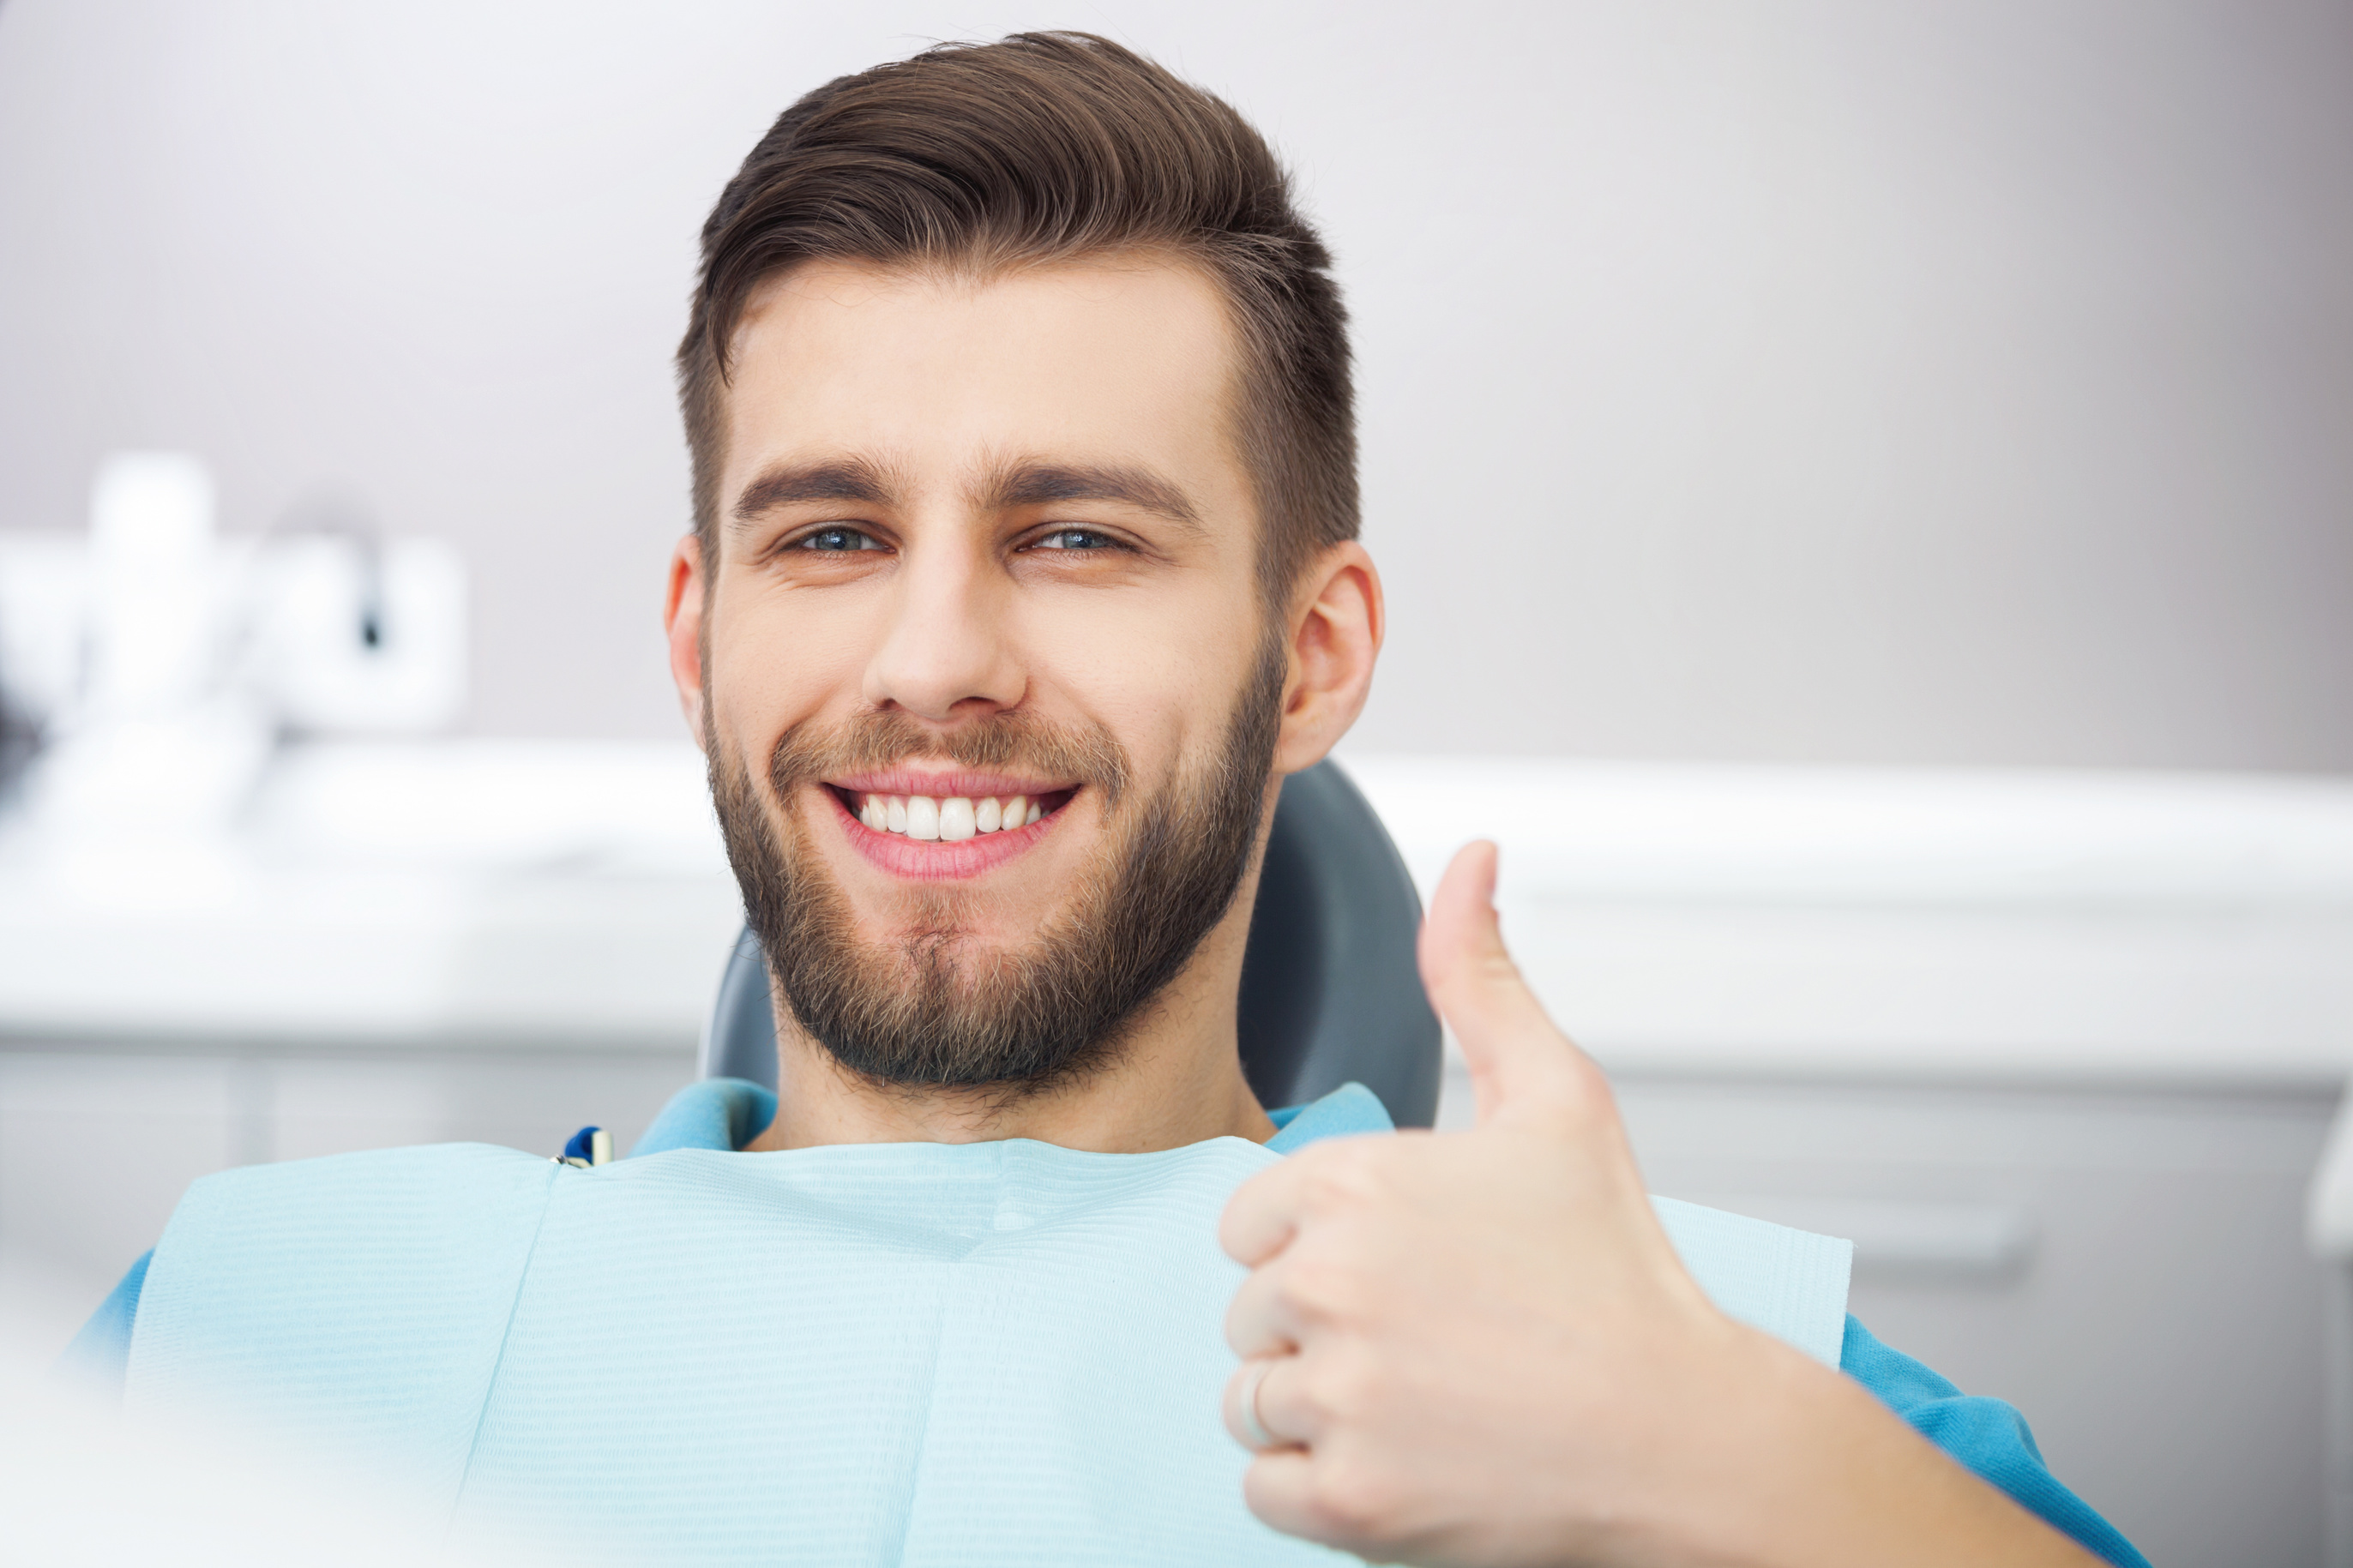 Where can I find a Camarillo sedation dentist?